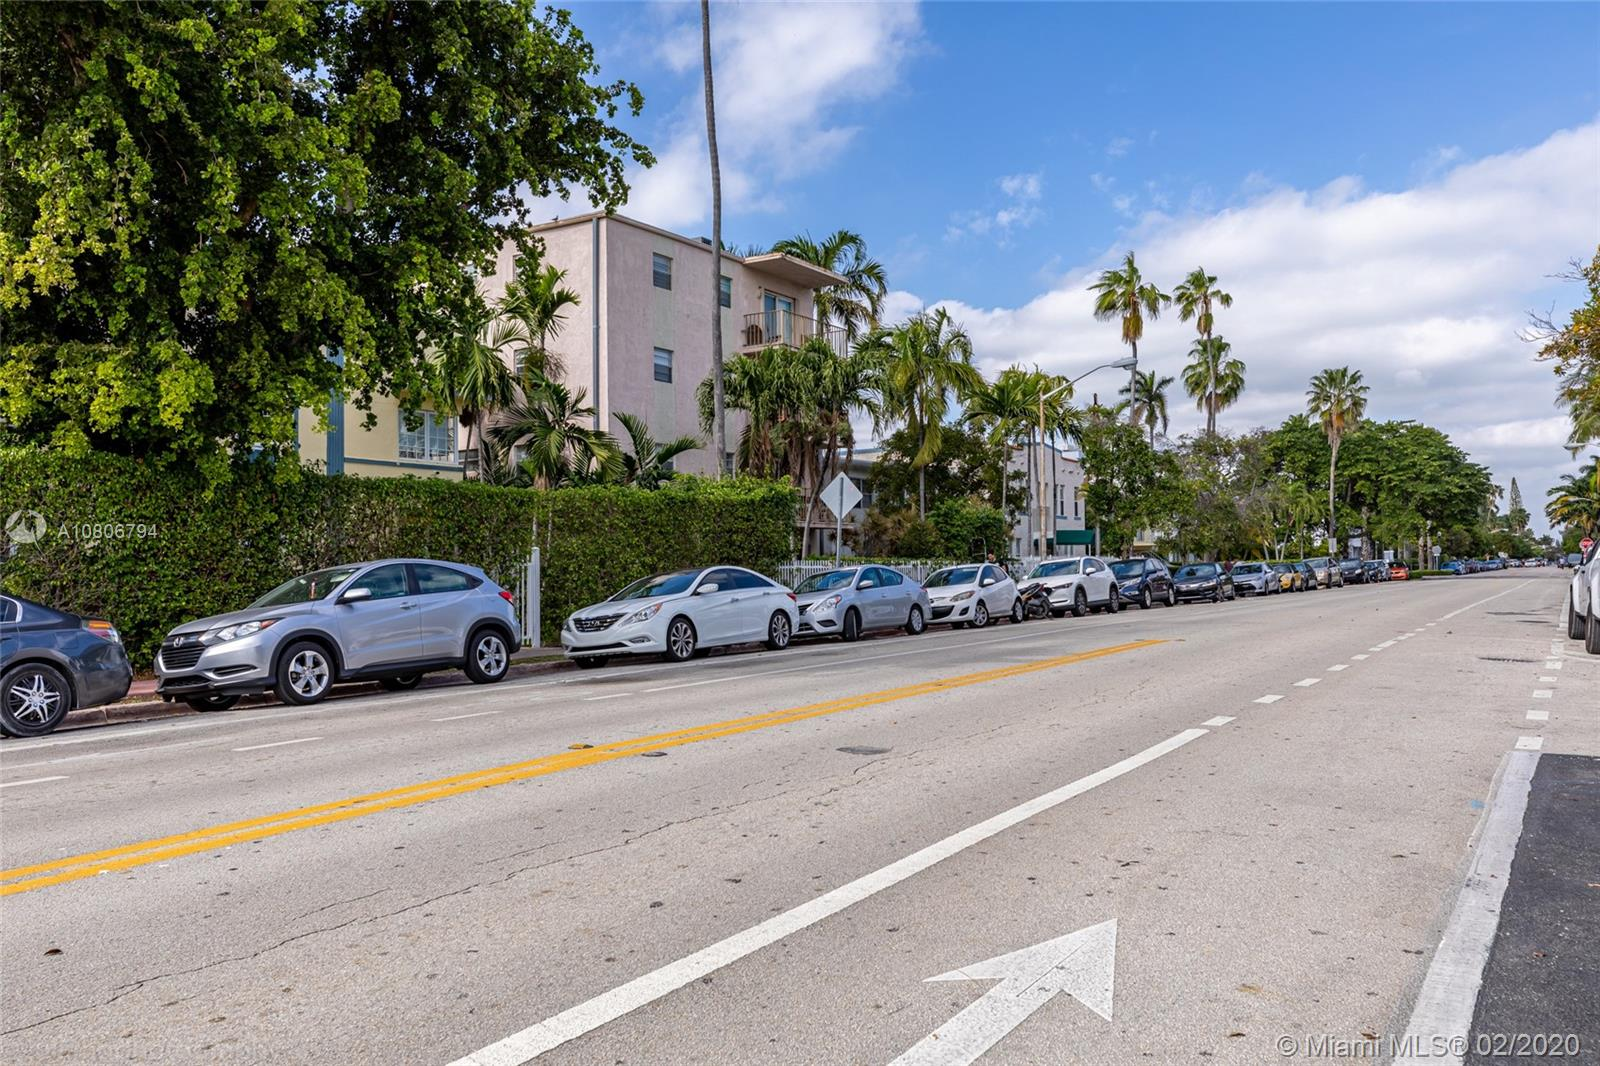 Photo - 618 Euclid Ave # 204, Miami Beach FL 33139